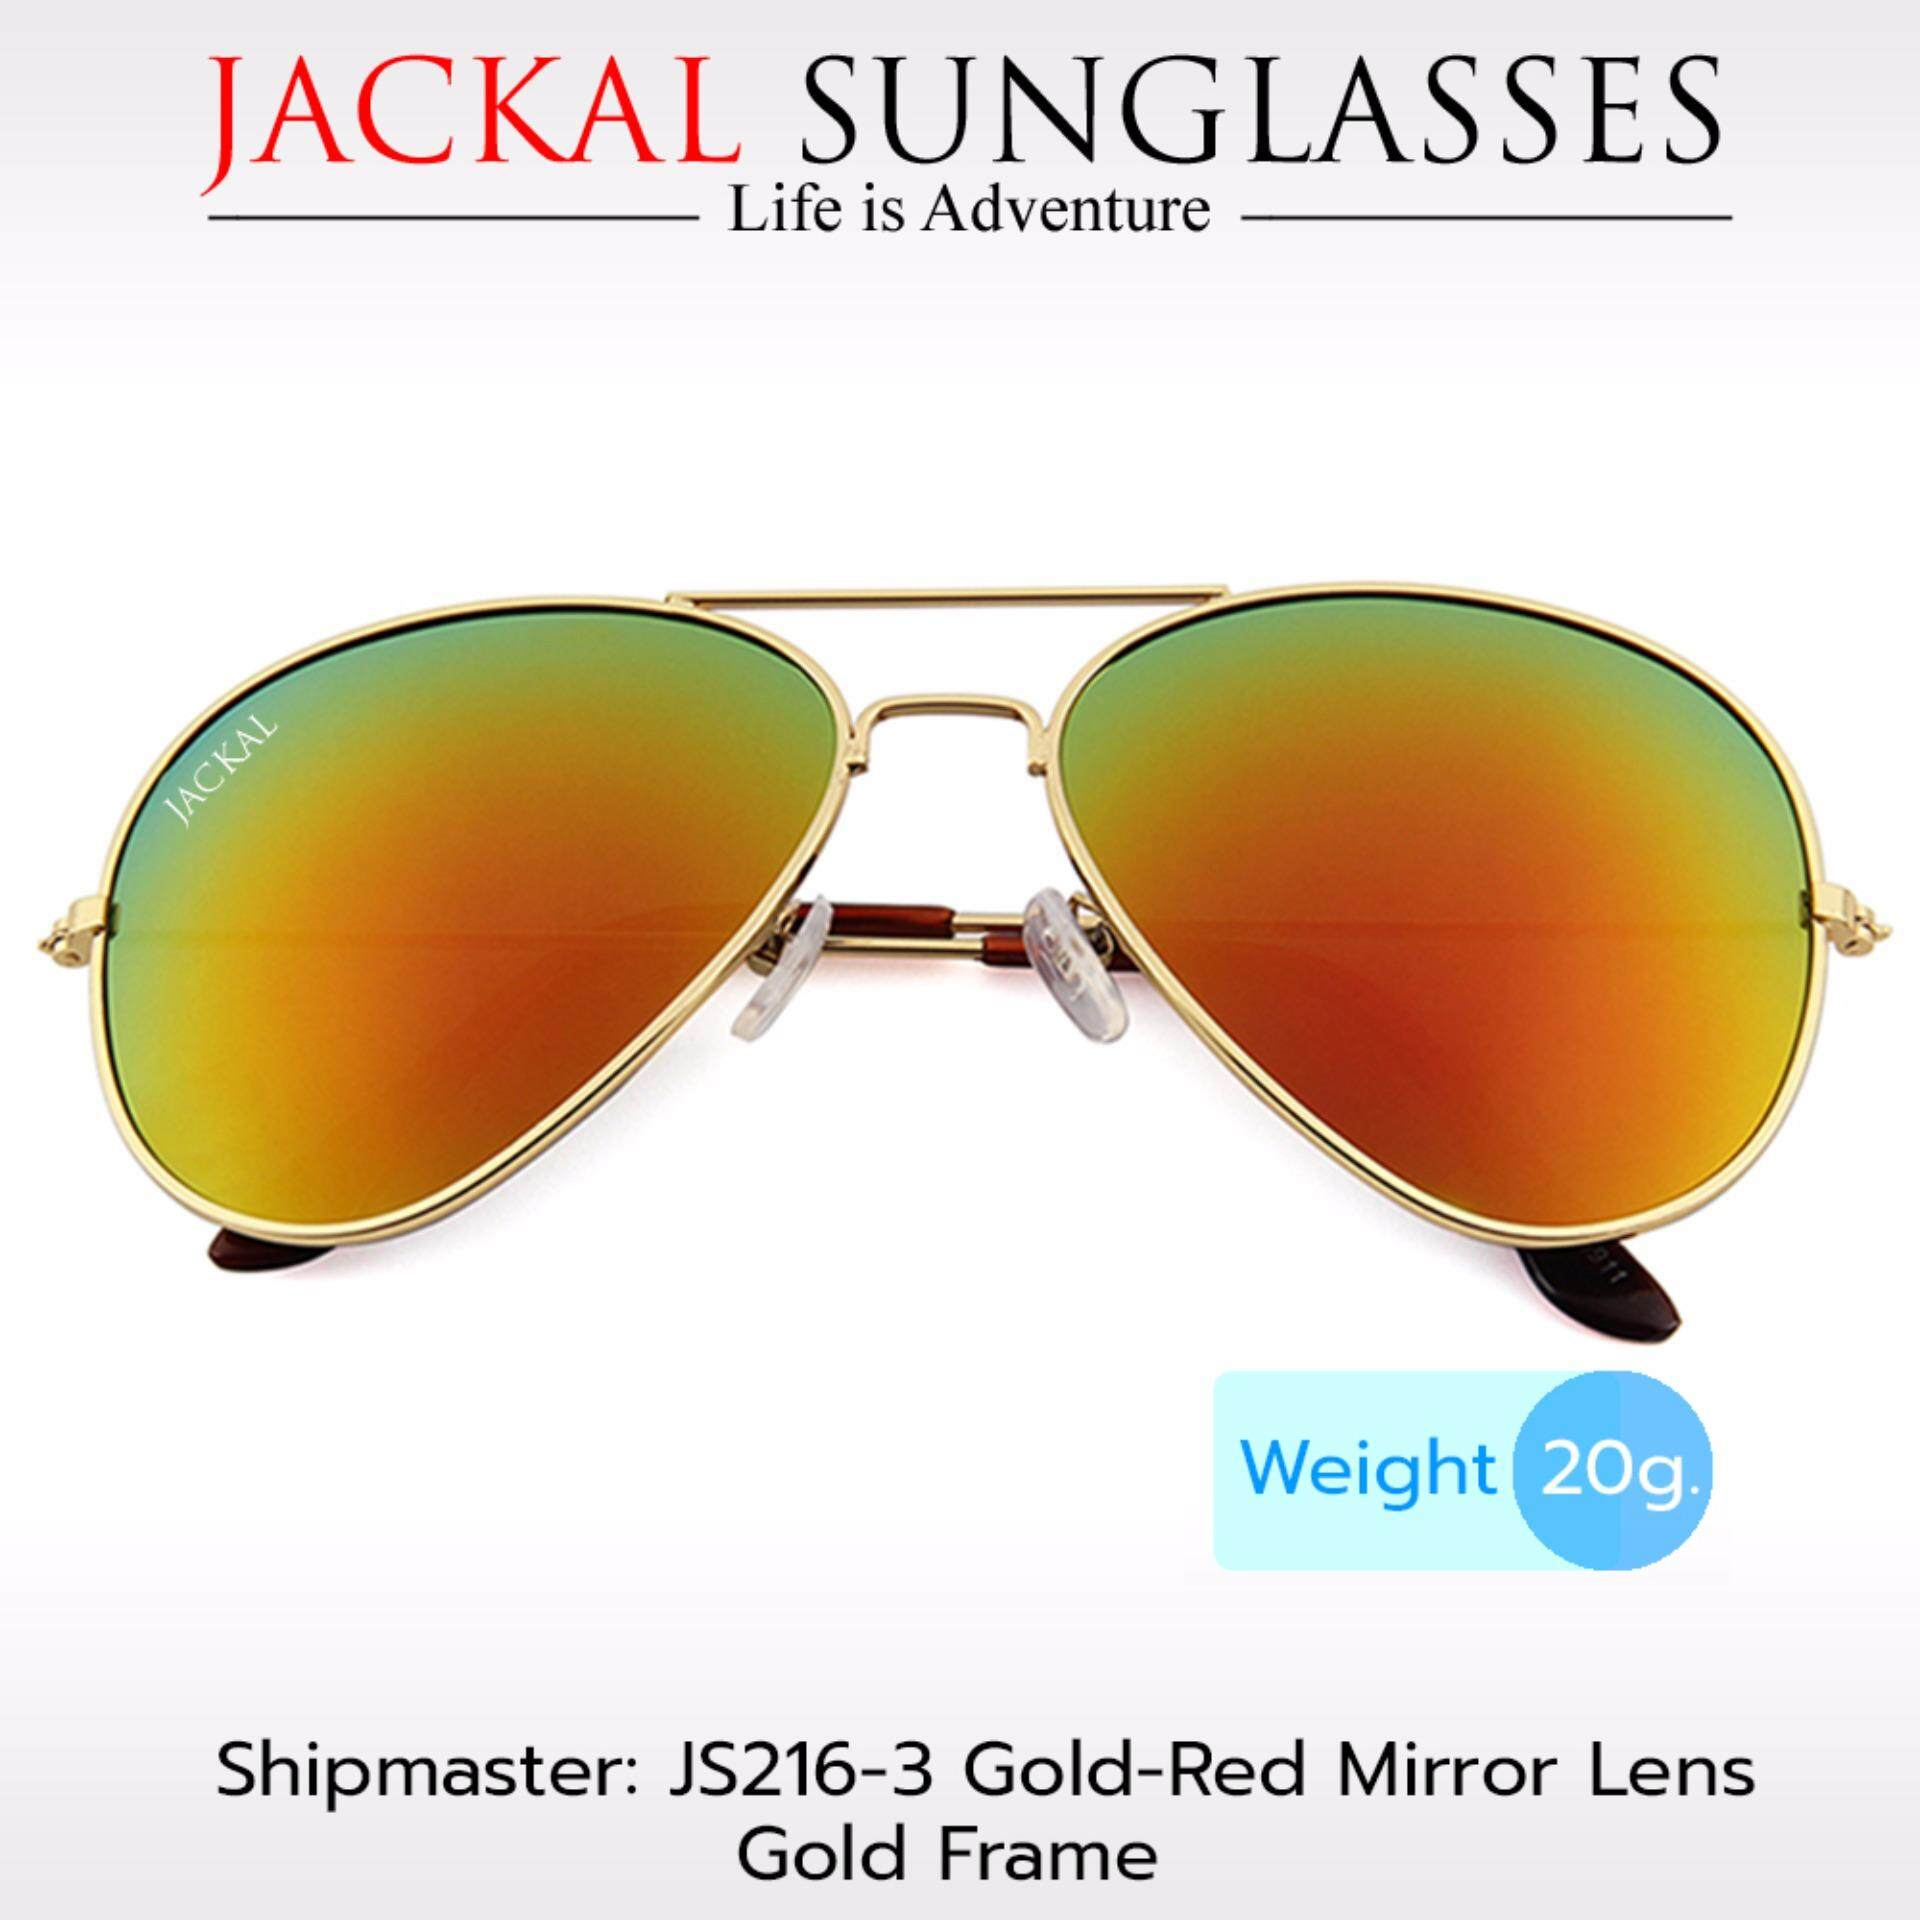 JACKAL SUNGLASSES แว่นกันแดด Jackal Traveller JS216-3 Gold-Red Mirror Lens/Gold Frame